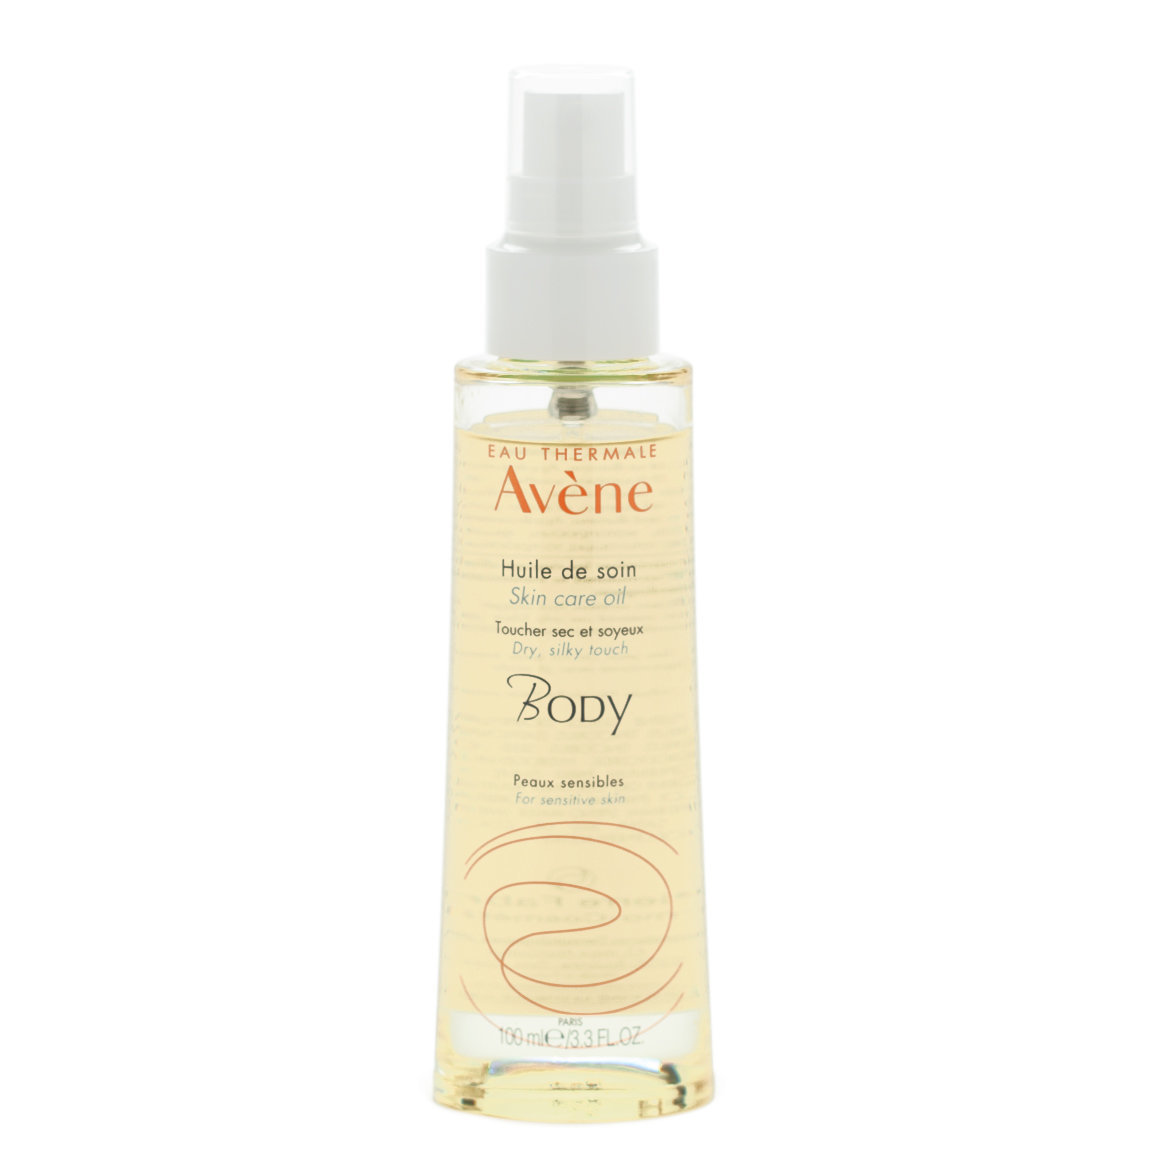 Eau Thermale Avène Skin Care Oil product smear.